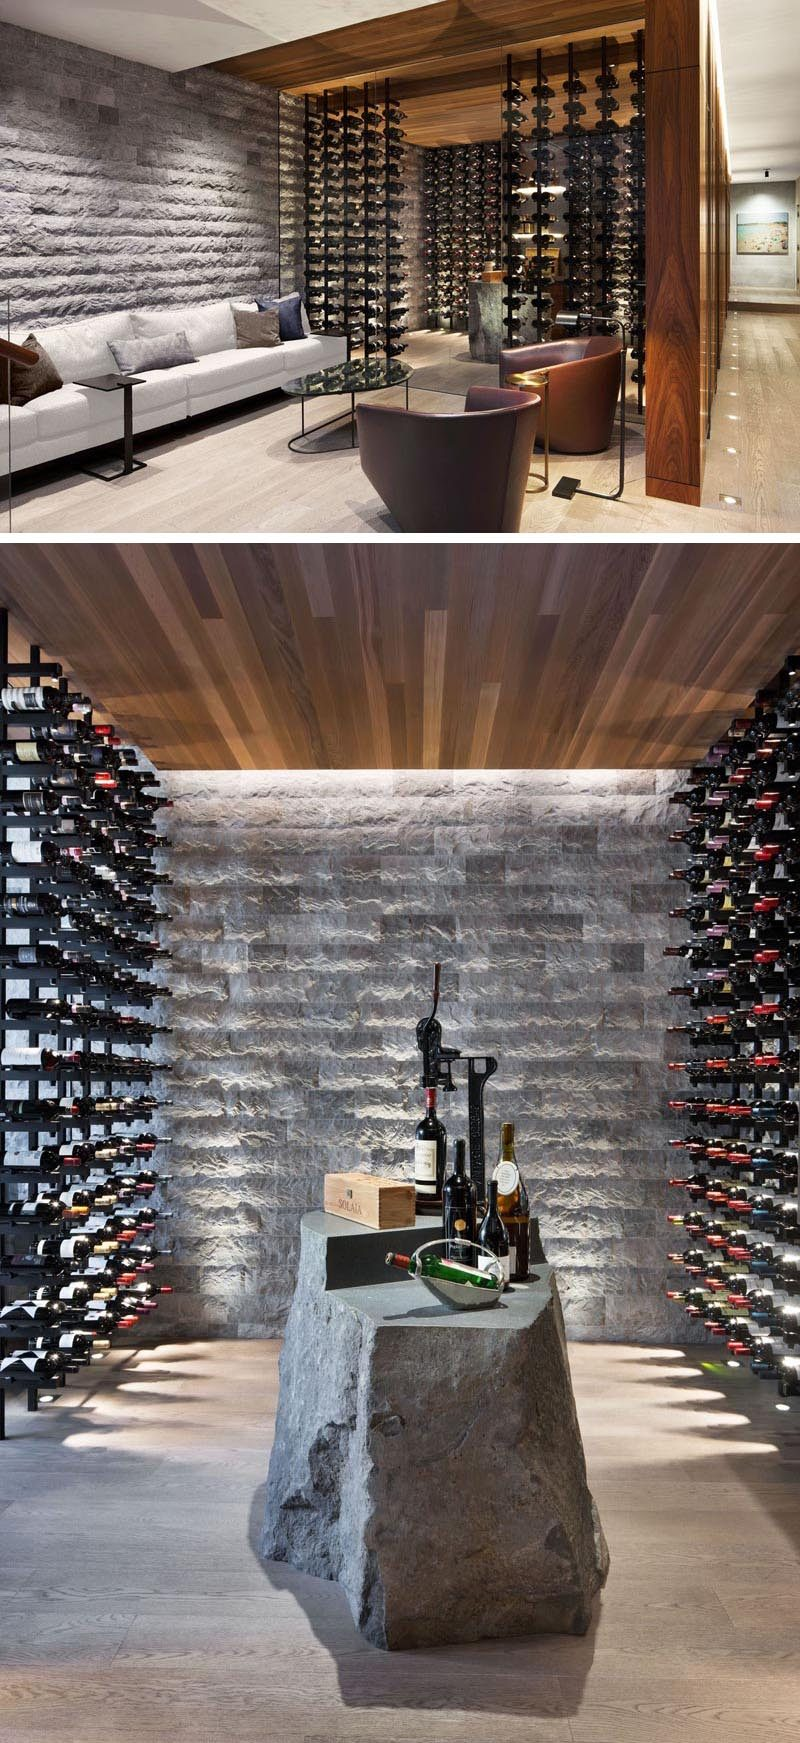 This modern wine cellar has glass walls, plenty of bottle storage, and a stone element that's been designed to be used as a table. #WineCellar #WineRoom #WineStorage